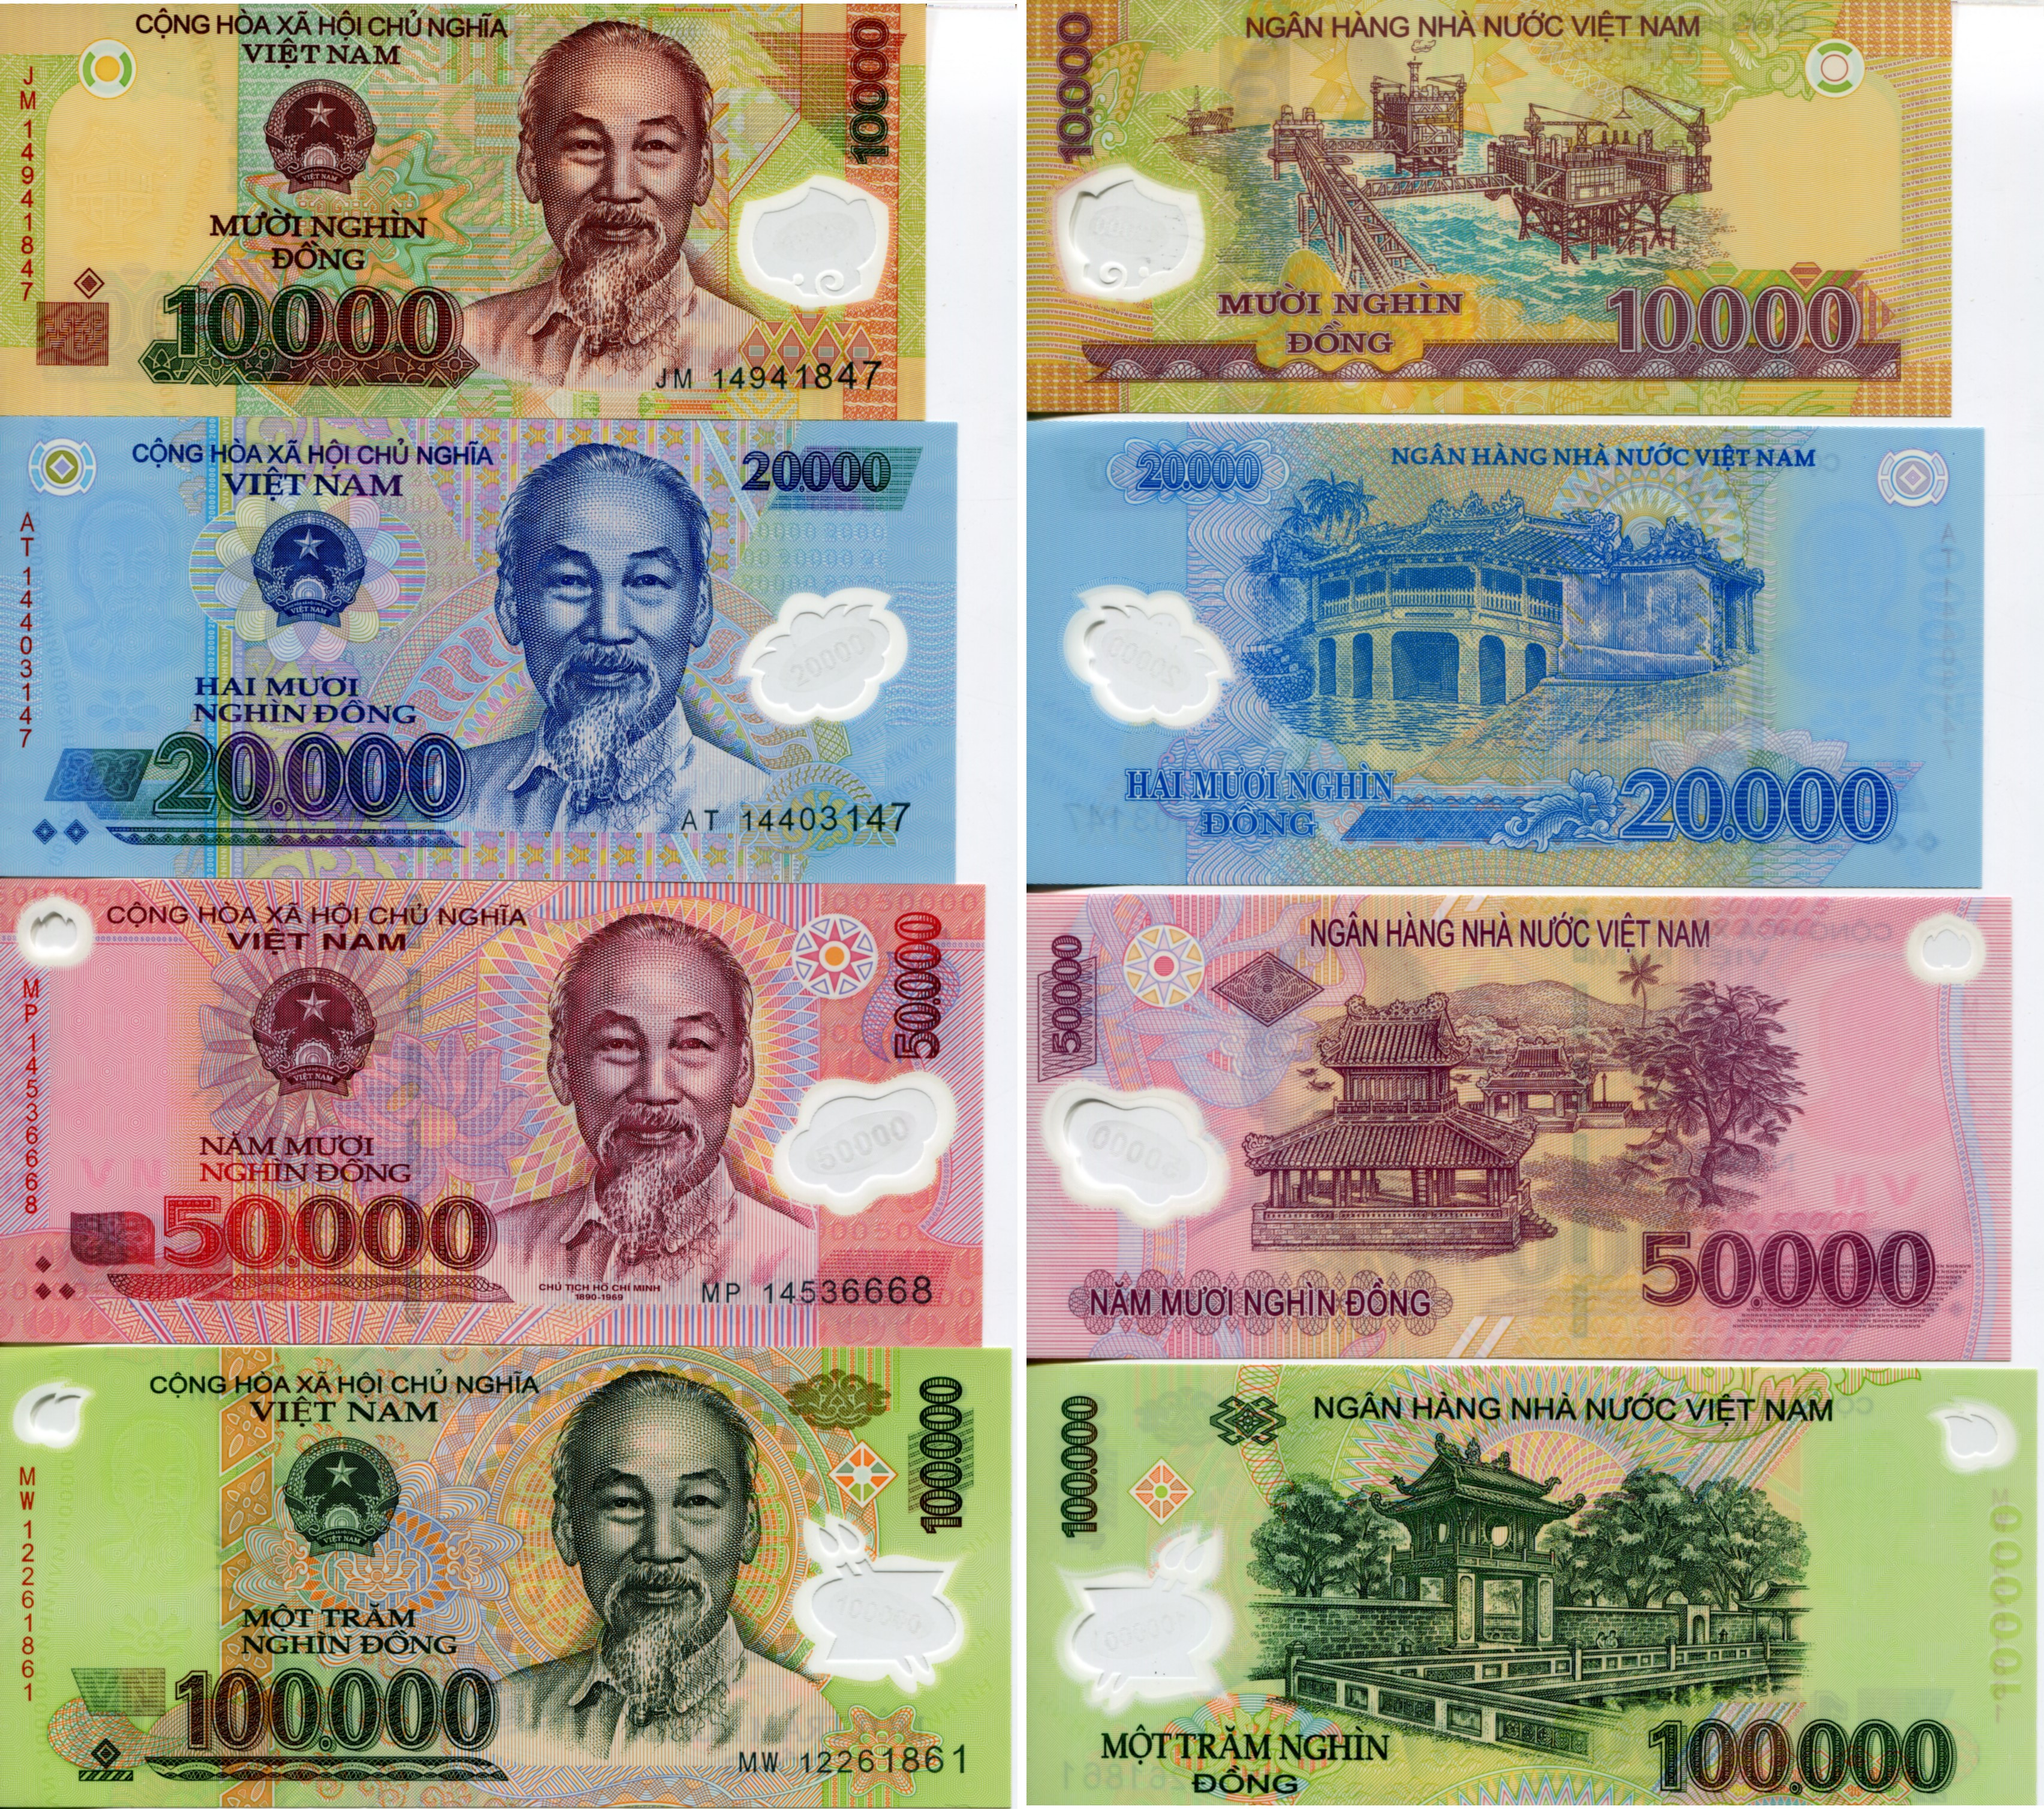 The currency of Vietnam, its history, rate and denomination